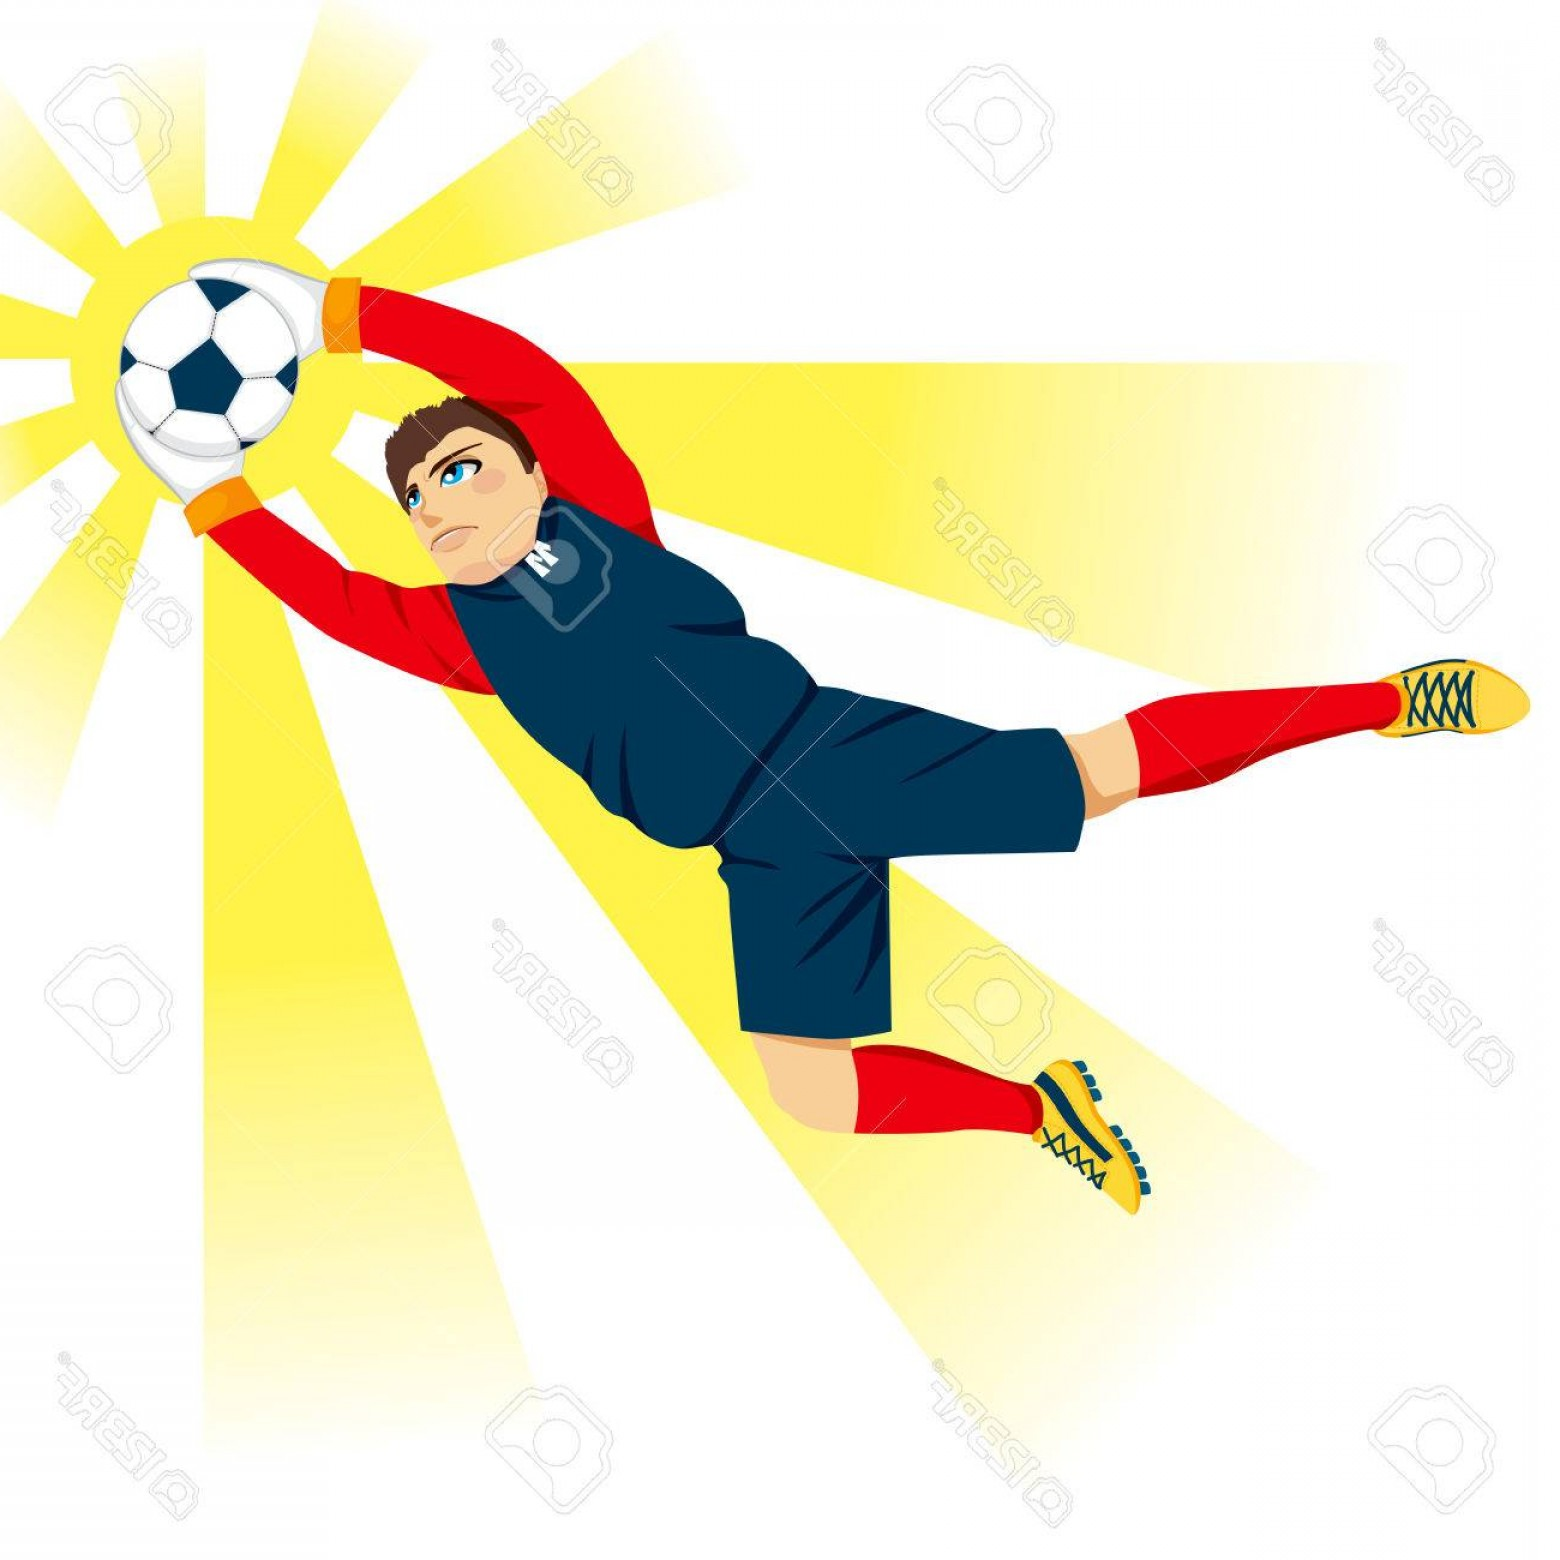 Vector Professional Goal: Photostock Vector Young Professional Goal Keeper Jumping Catching The Ball With Flash Effect